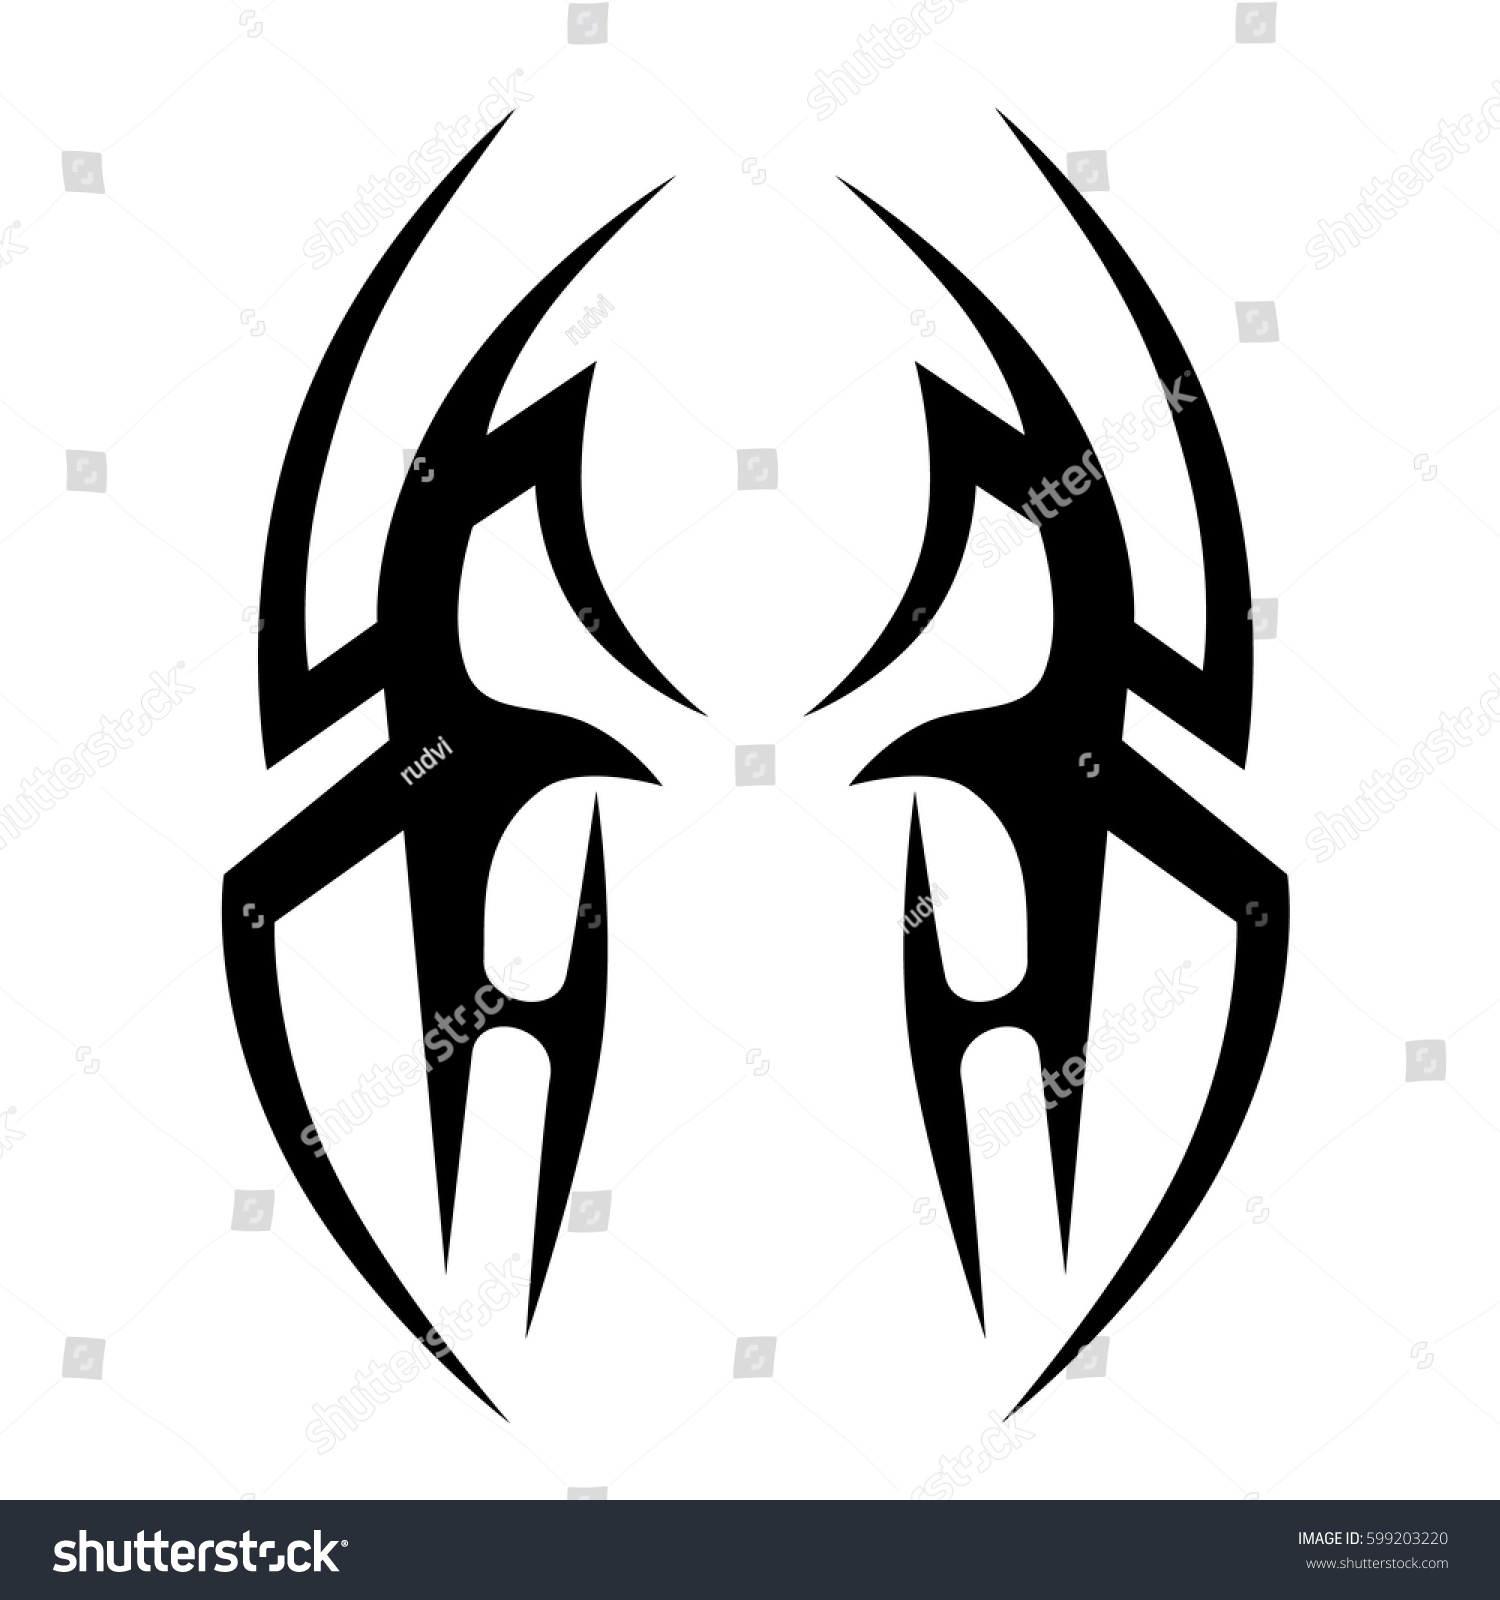 Tribal-Tattoos stock-vector-vector-tribal-tattoo-designs-tribal-tattoos-art-tribal-tattoo-vector-sketch-of-a-tattoo-599203220